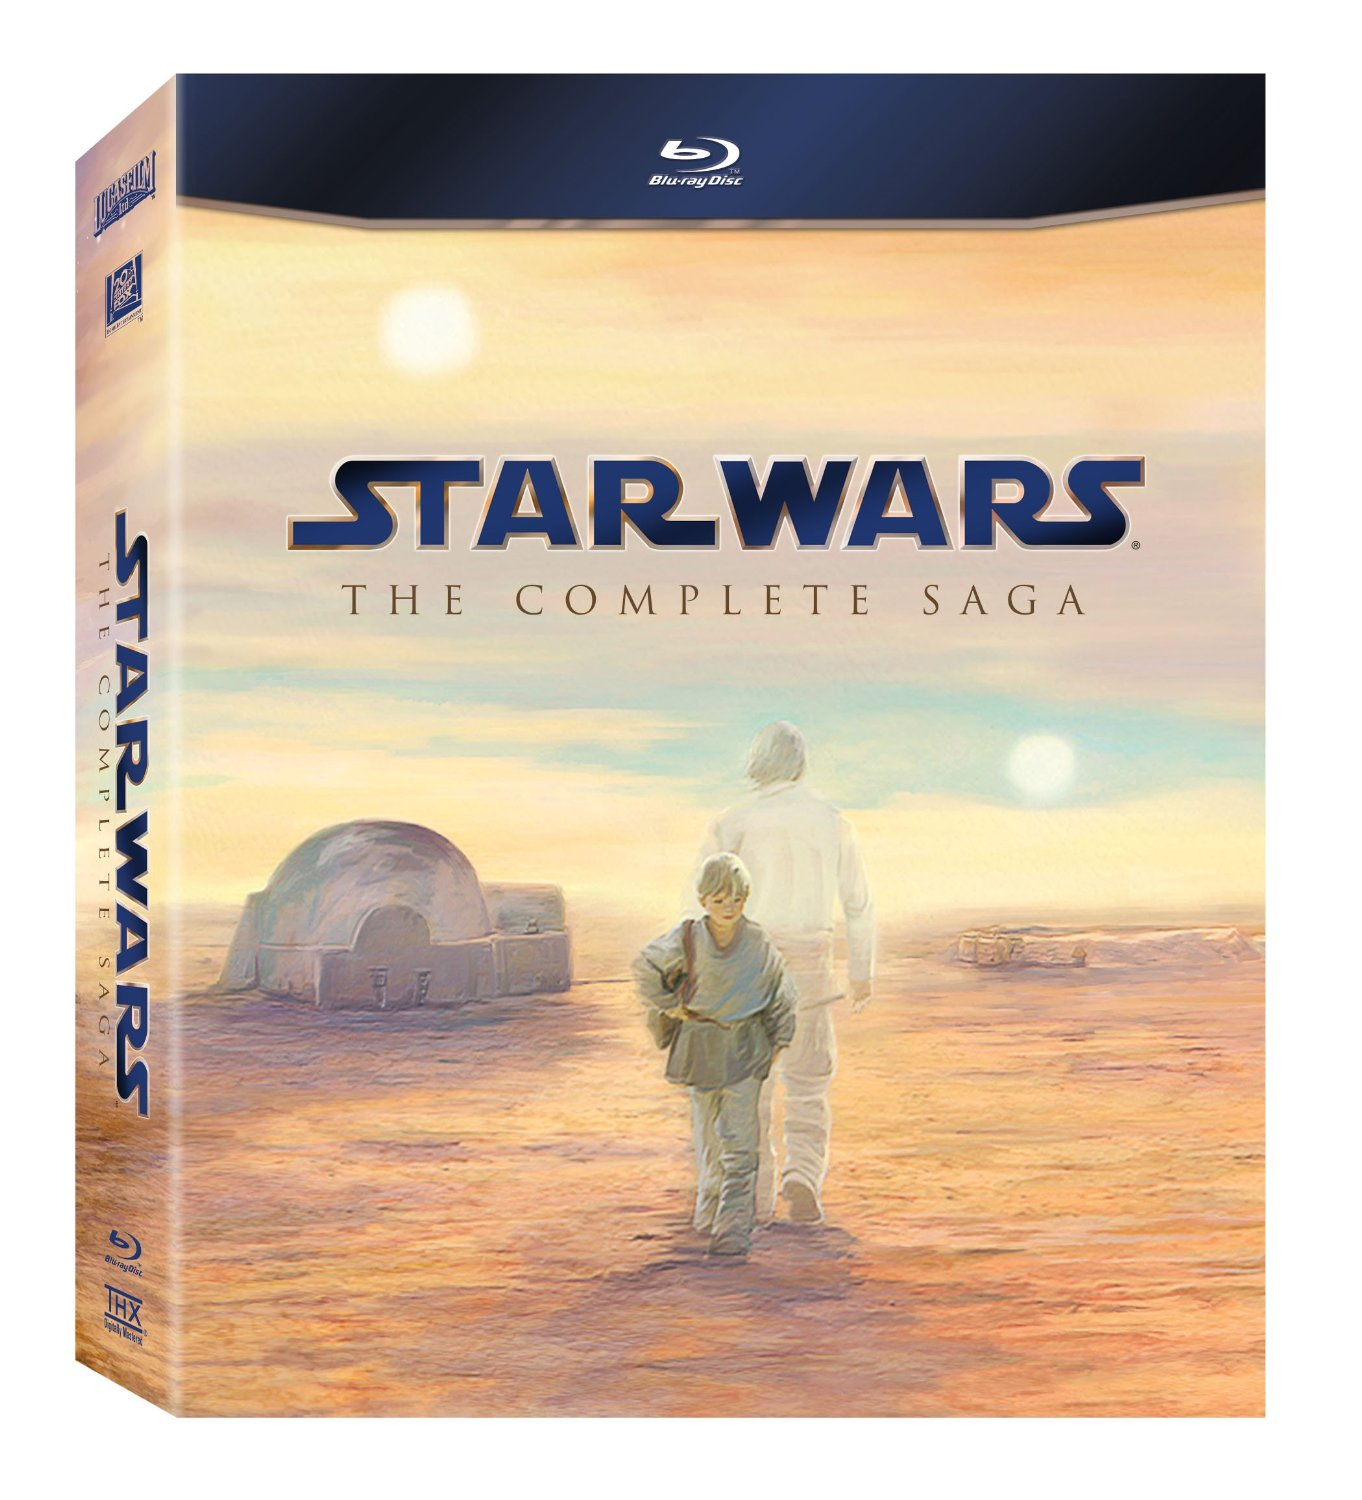 Star wars complete sga | Sheknows.com